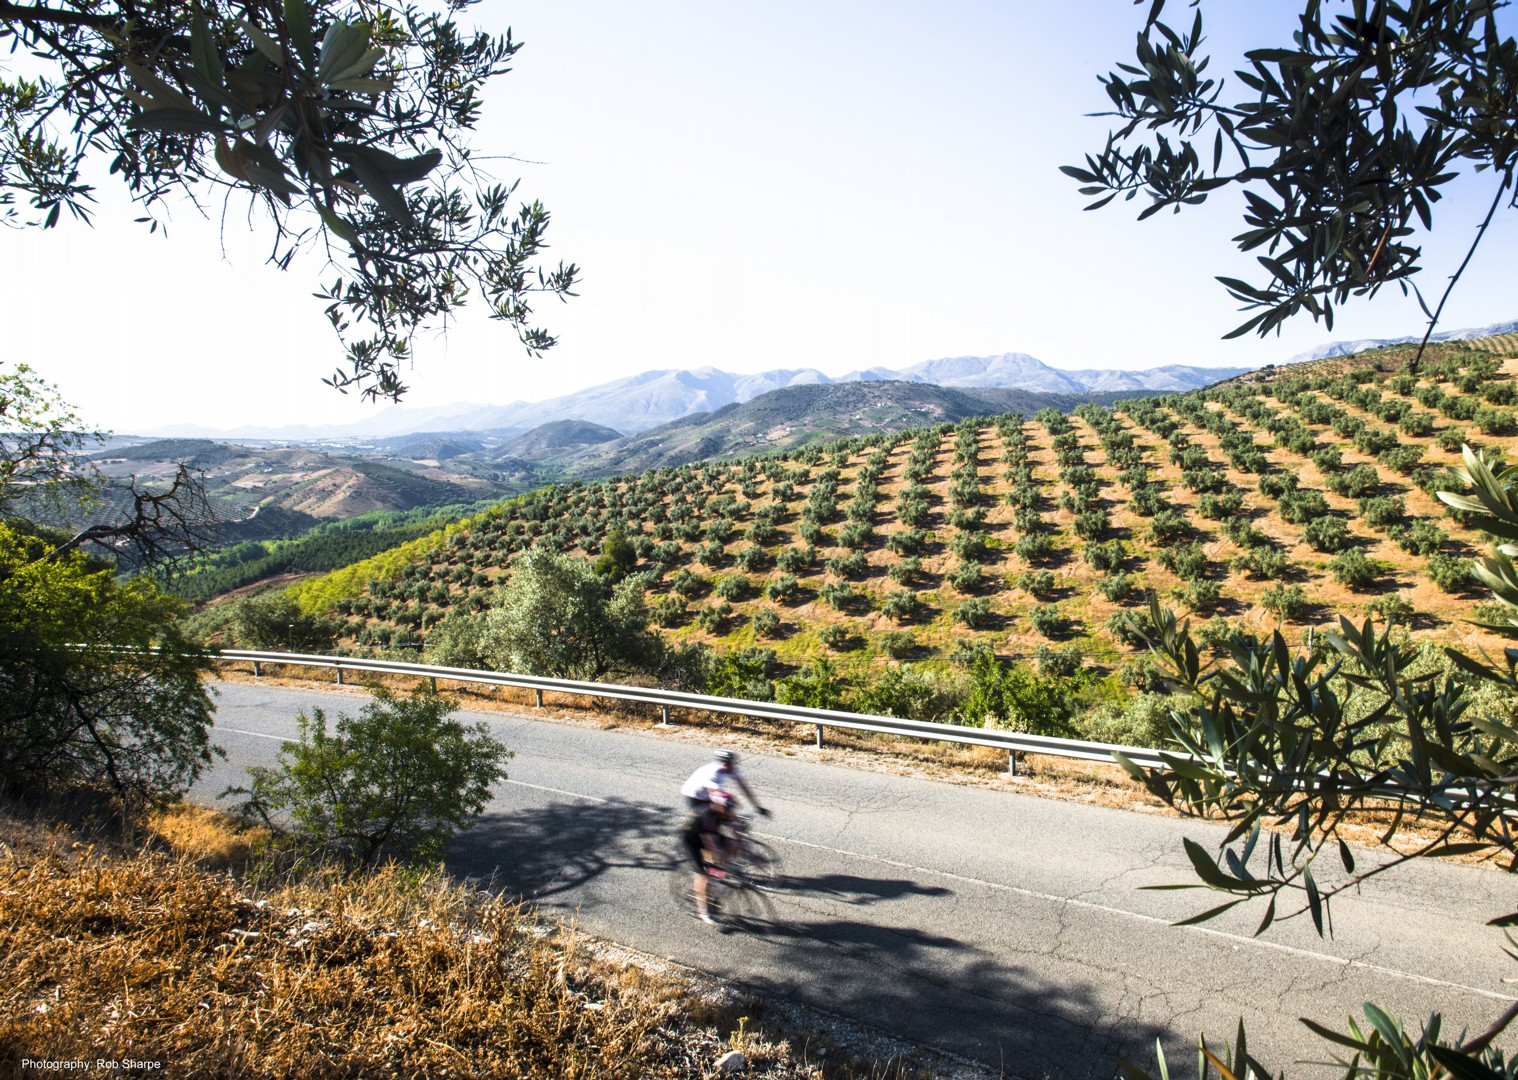 los-pueblos-blancos-andalucia-spain-self-guided-road-cycling-holiday.jpg - Southern Spain - Andalucia - Los Pueblos Blancos - Self-Guided Road Cycling Holiday - Road Cycling